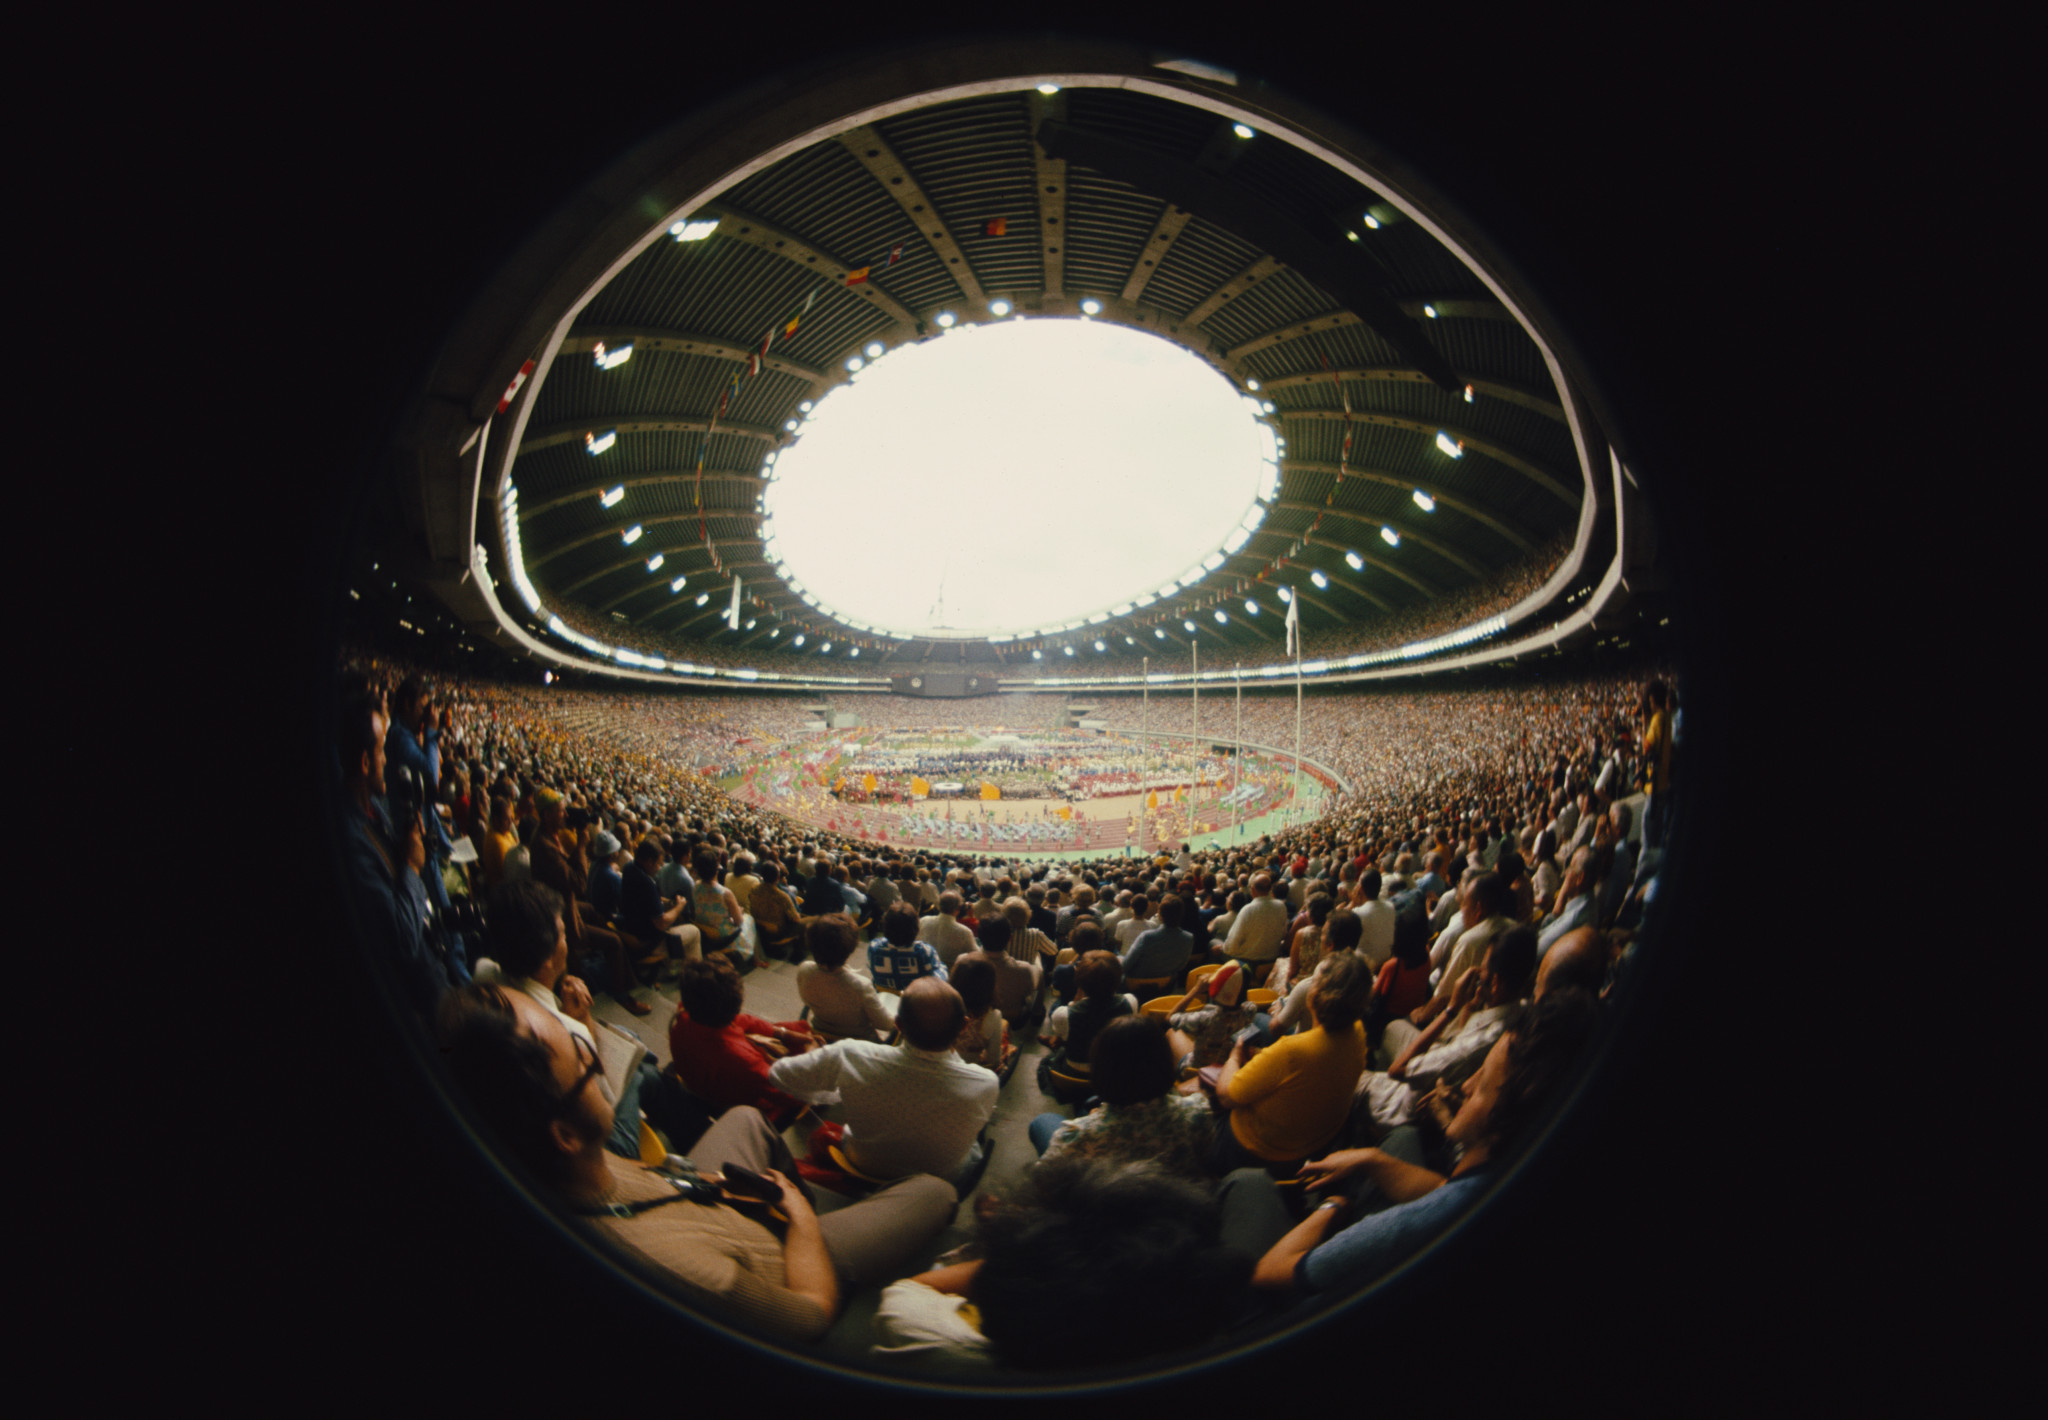 The Montreal 1976 Olympics are regarded as a financial disaster ©Getty Images